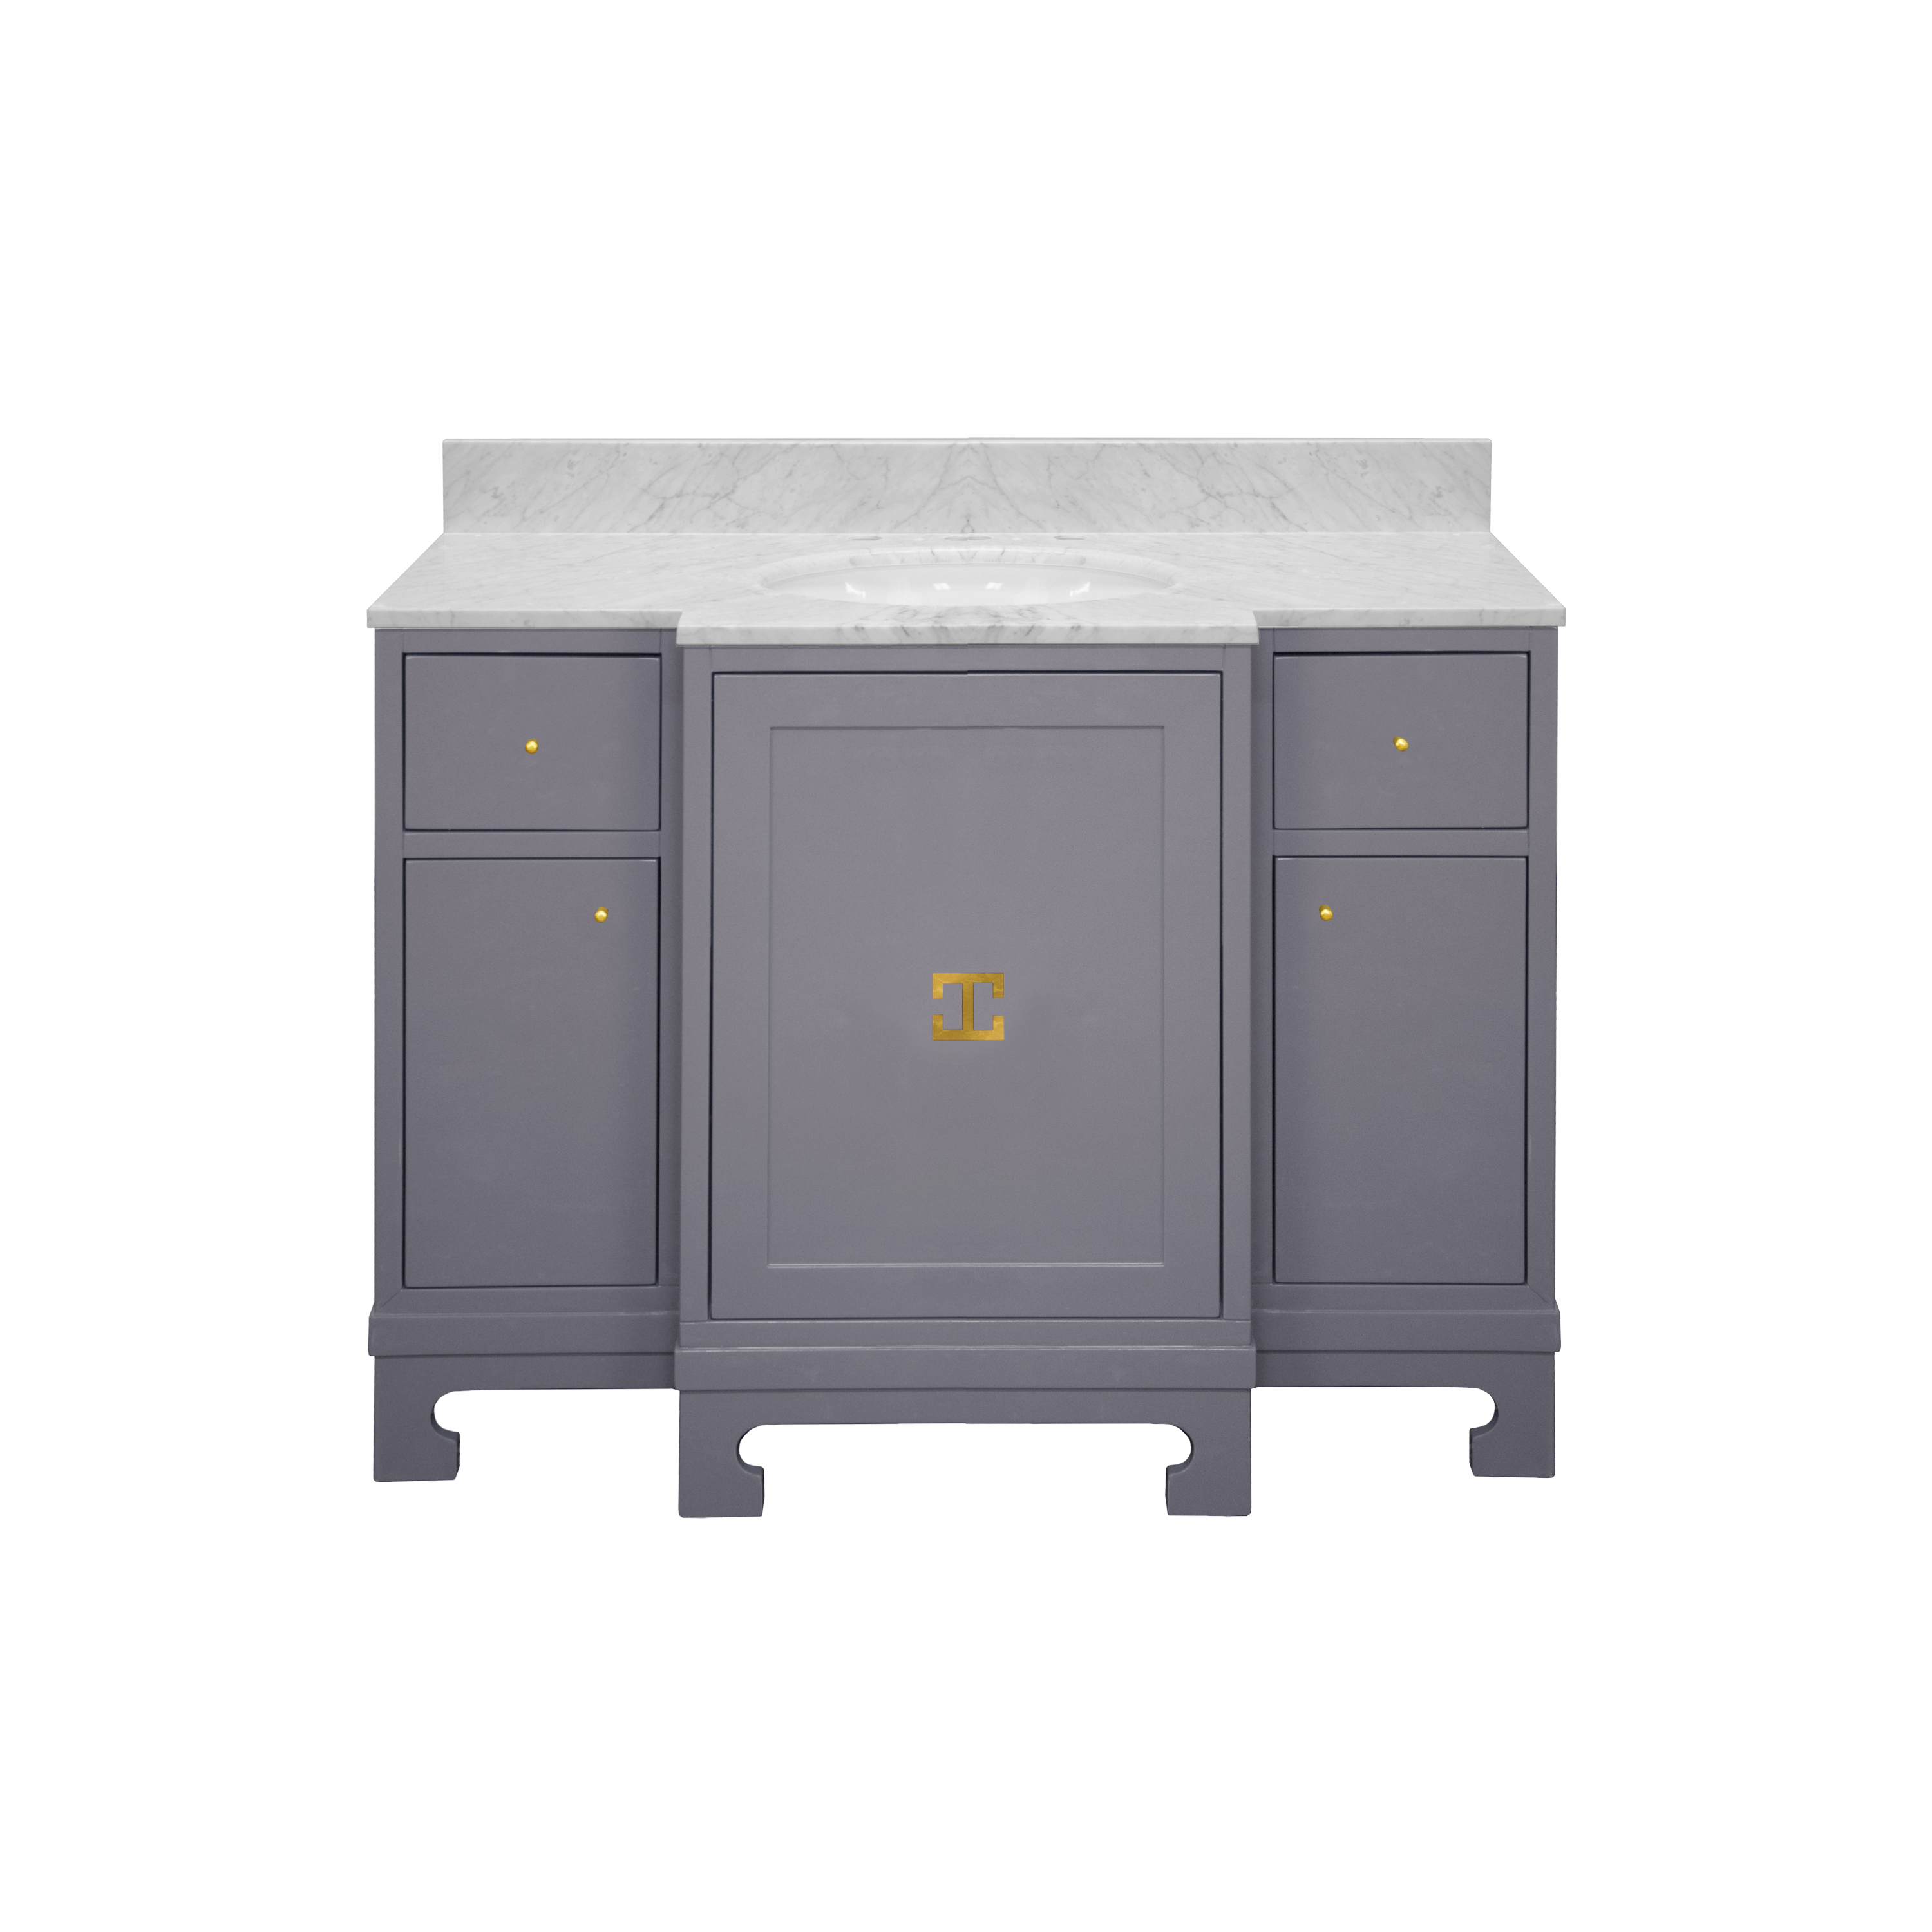 3 Door 2 Drawer Gray Lacquer Bath Vanity, White Carrara Marble Top with Backsplash Option